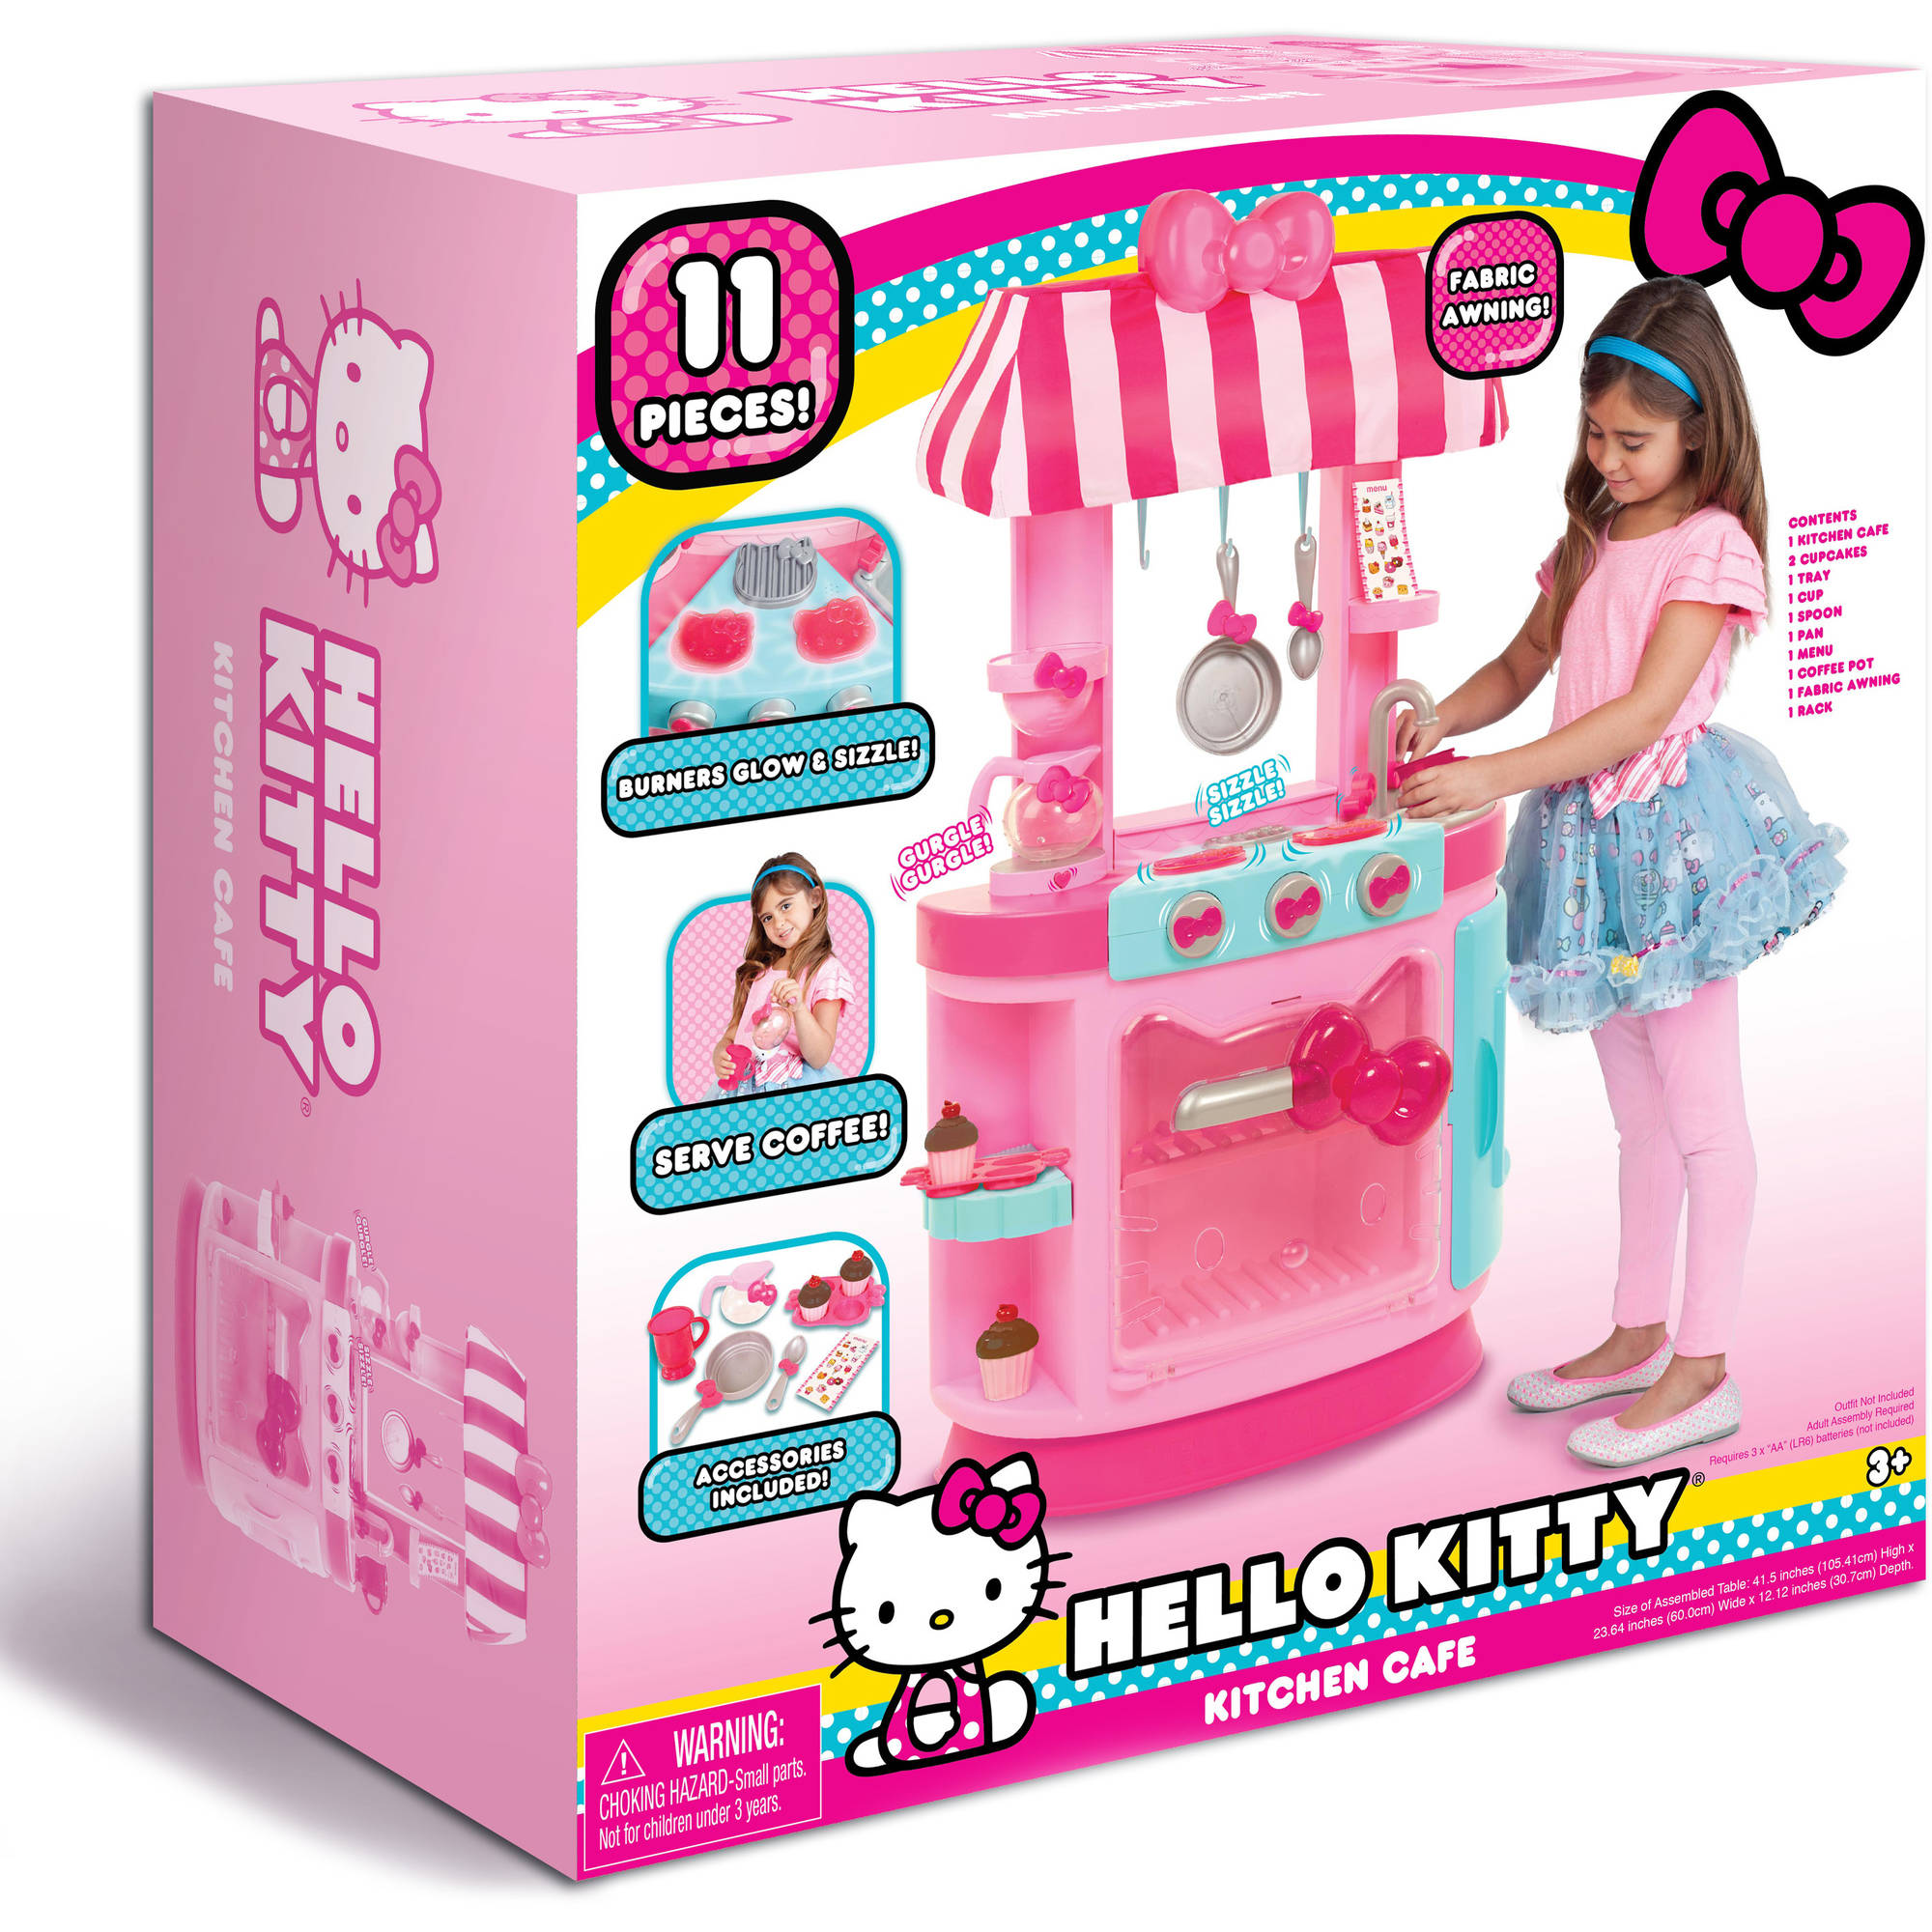 d1fcfb8f1 Hello Kitty Kitchen Cafe - Walmart.com